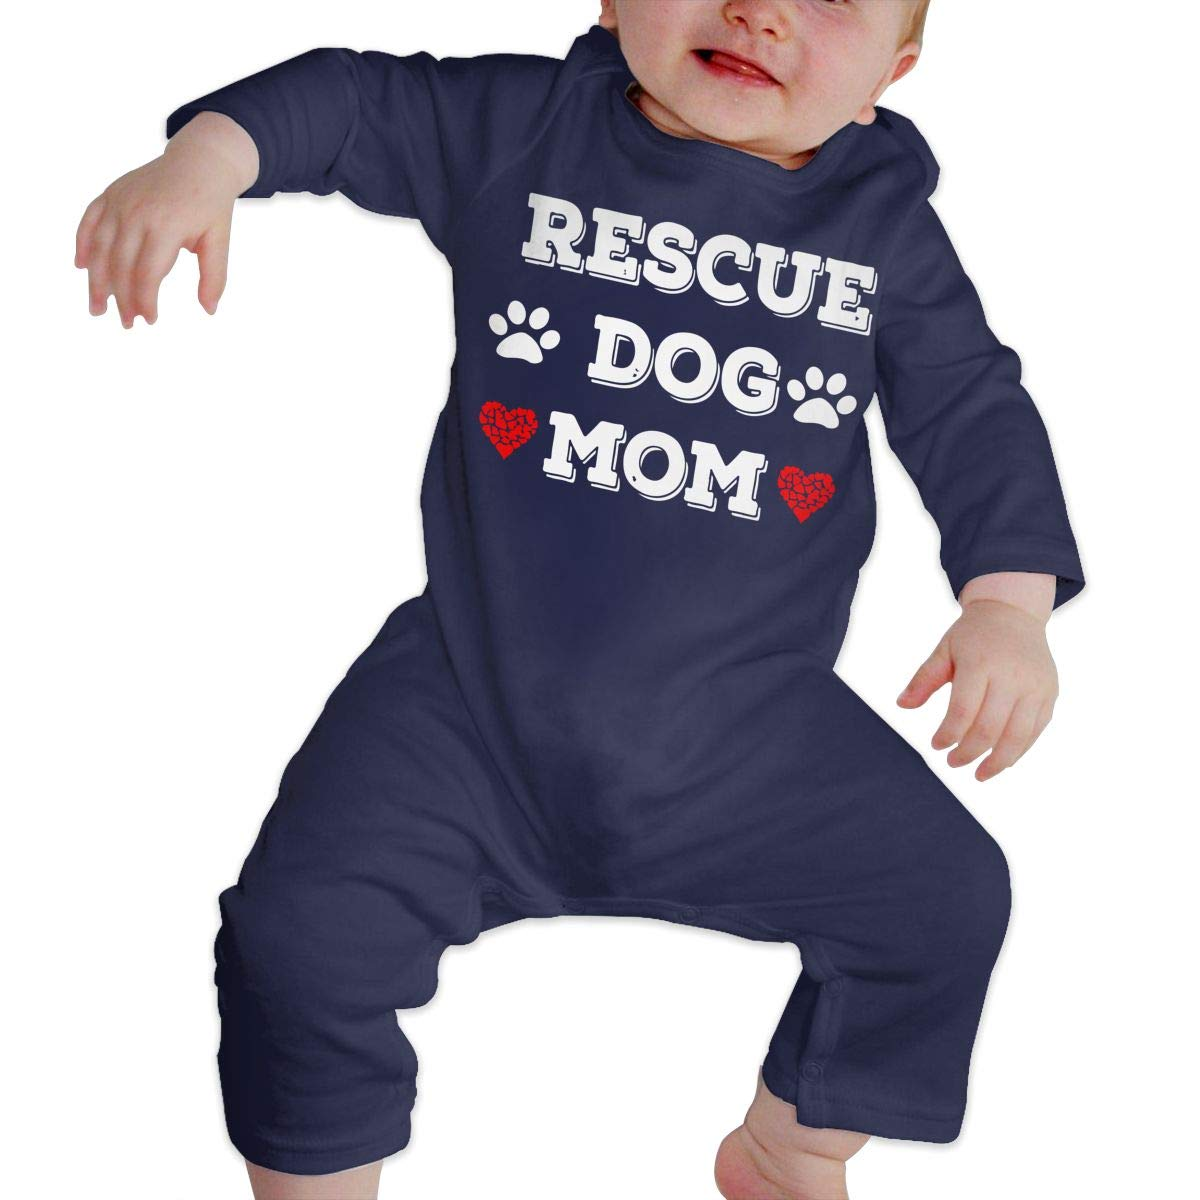 Mri-le1 Toddler Baby Boy Girl Coverall Rescue Dog Mom Infant Long Sleeve Romper Jumpsuit